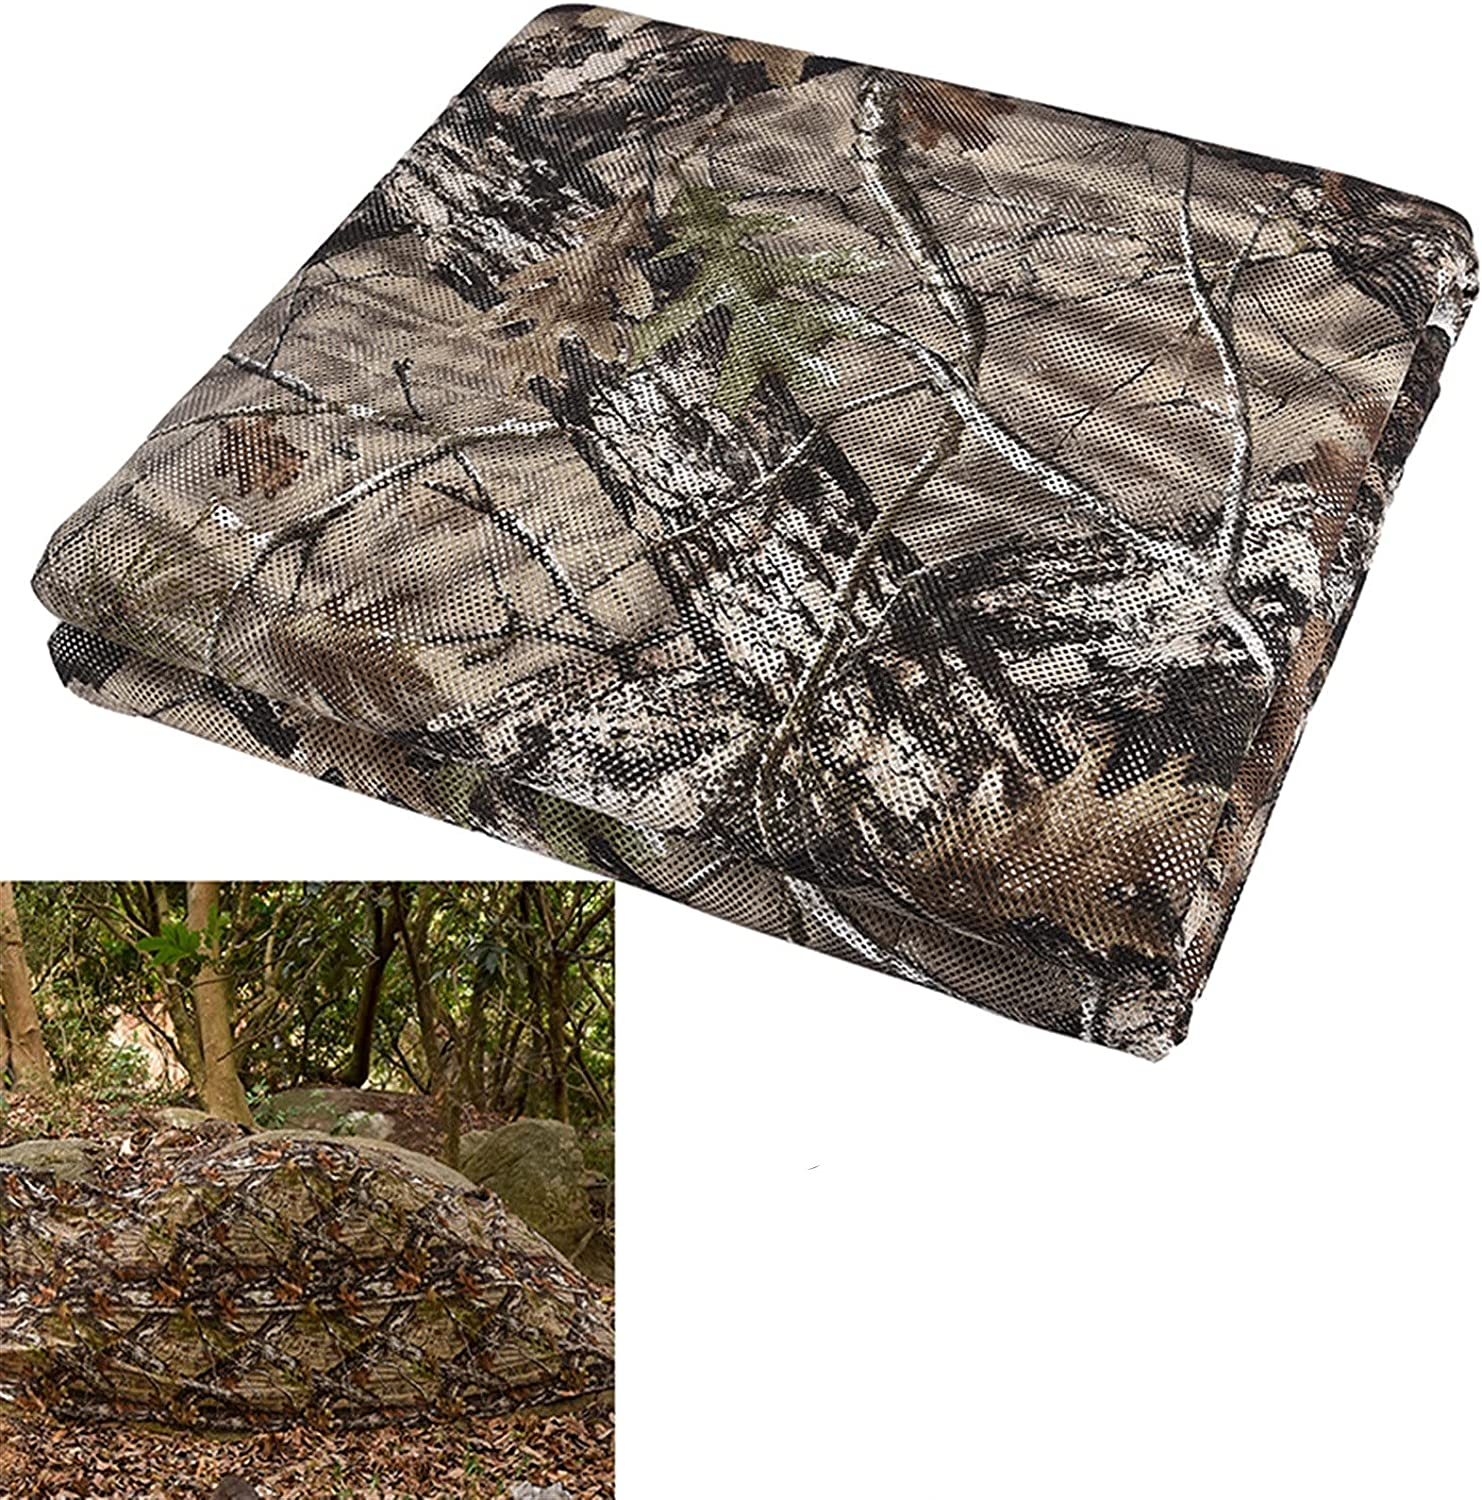 CDQU Outdoor Camouflage net 59 Large ! Super beauty product restock quality top! inches rol W sale